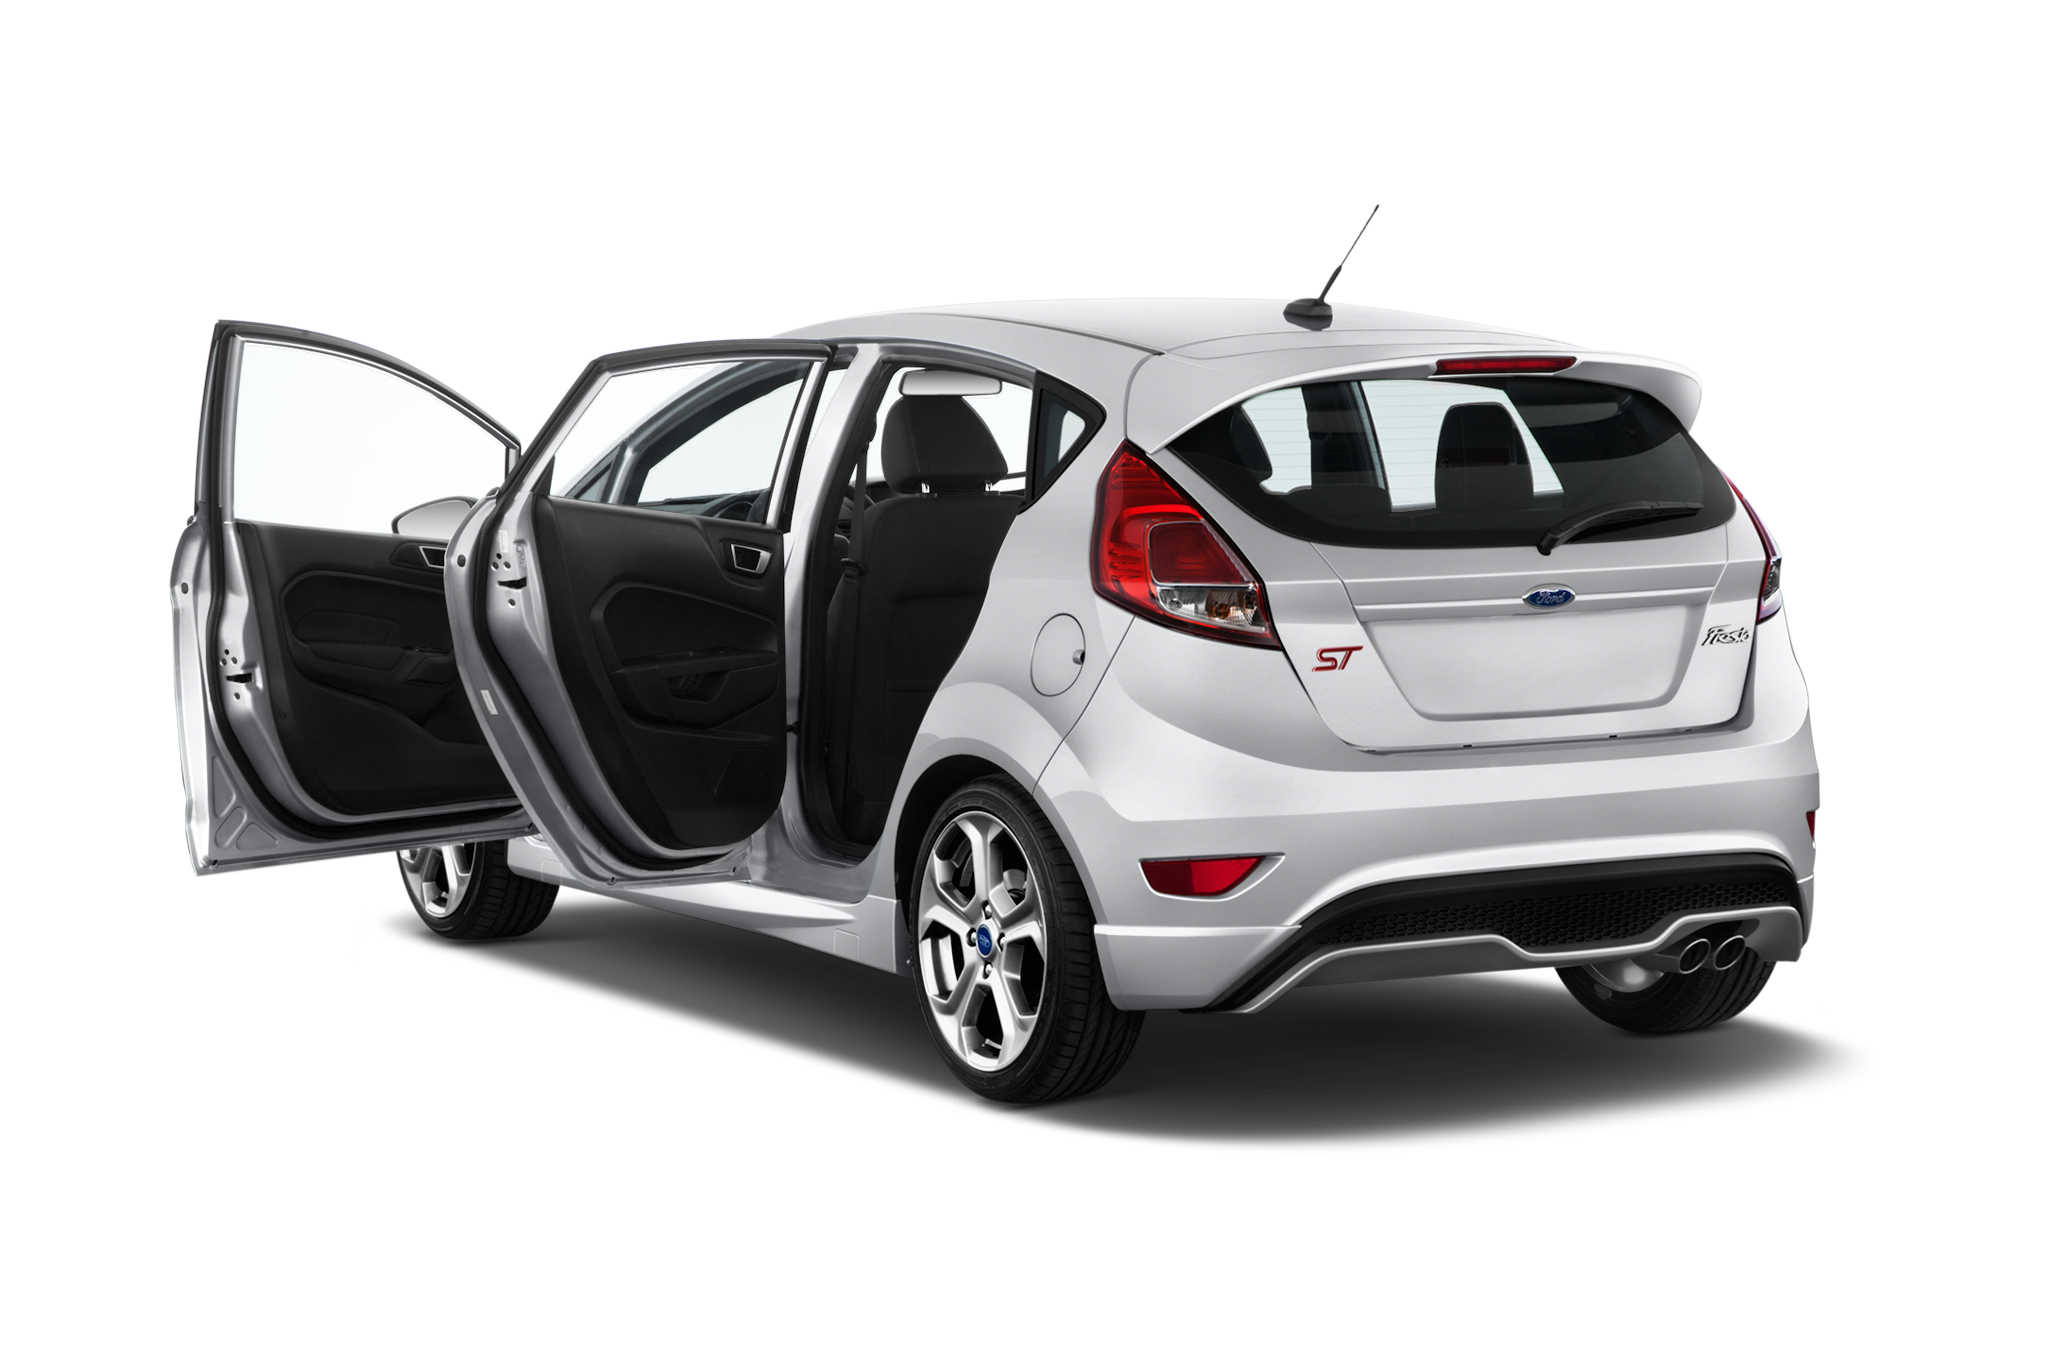 2015 Ford Fiesta And St Prices Reduced By 235 485 57 104